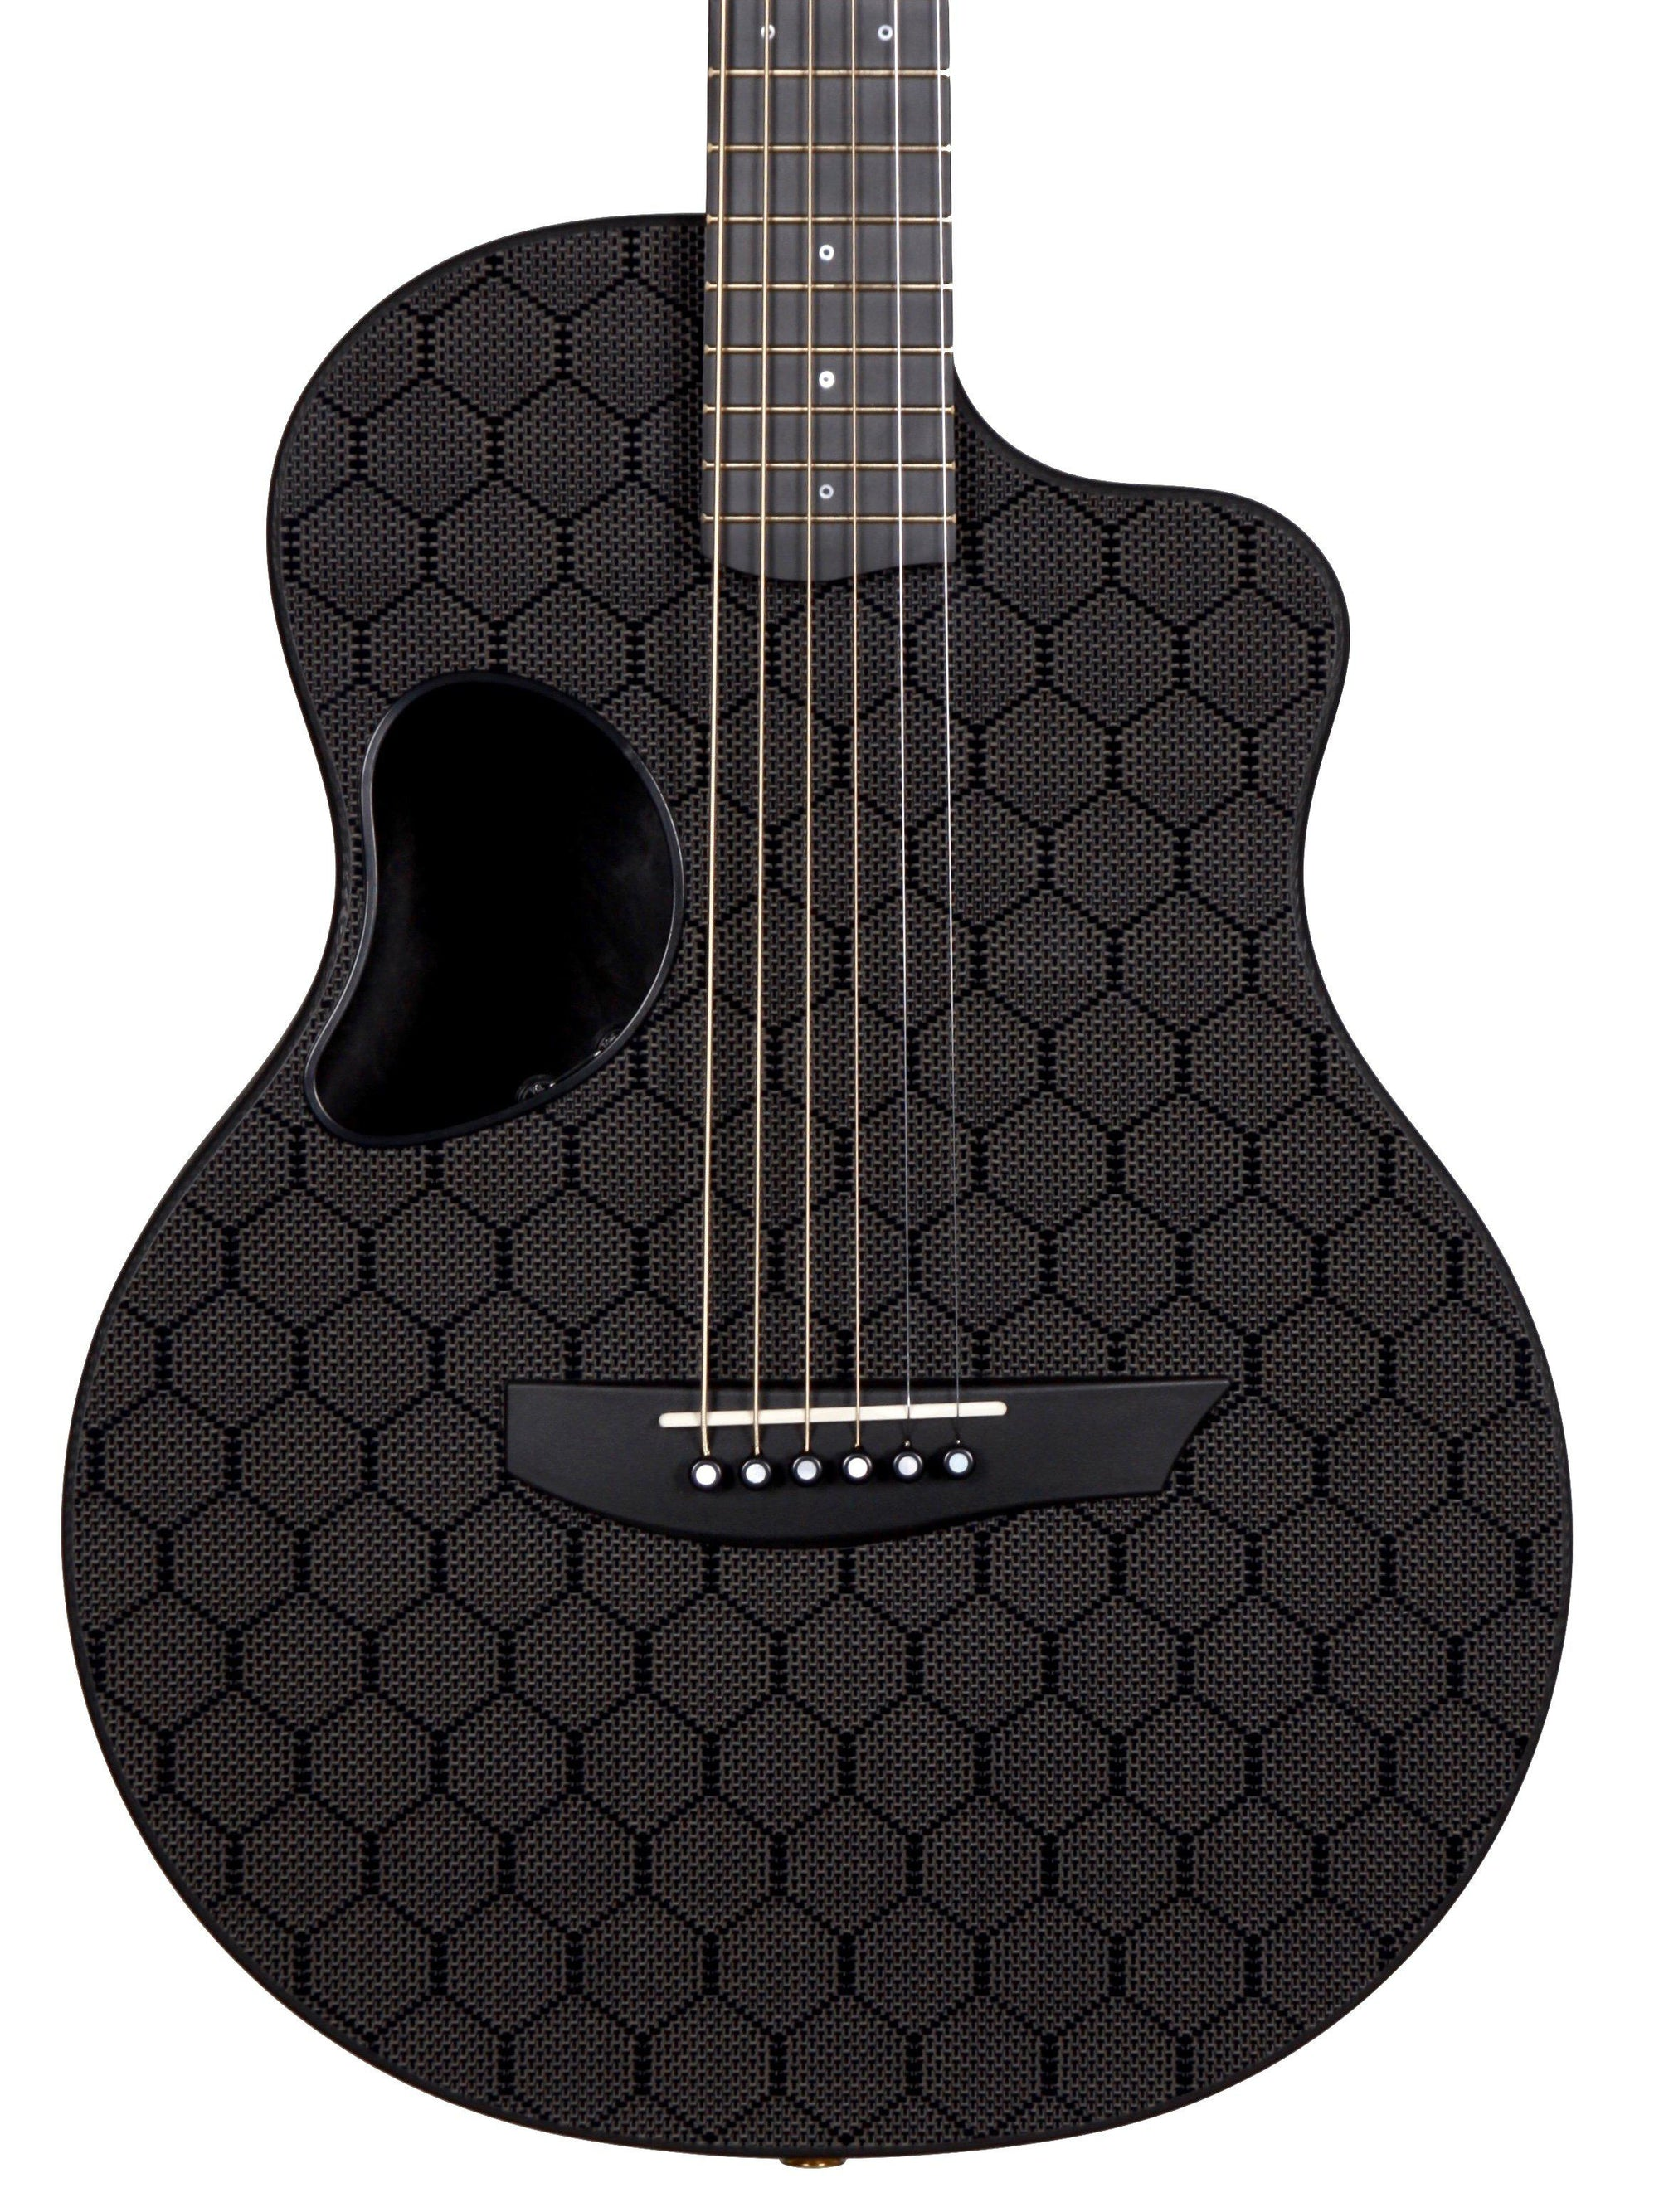 McPherson Carbon Fiber Touring Model Honeycomb Finish and Gold Hardware #GCTH995B - McPherson Guitars - Heartbreaker Guitars